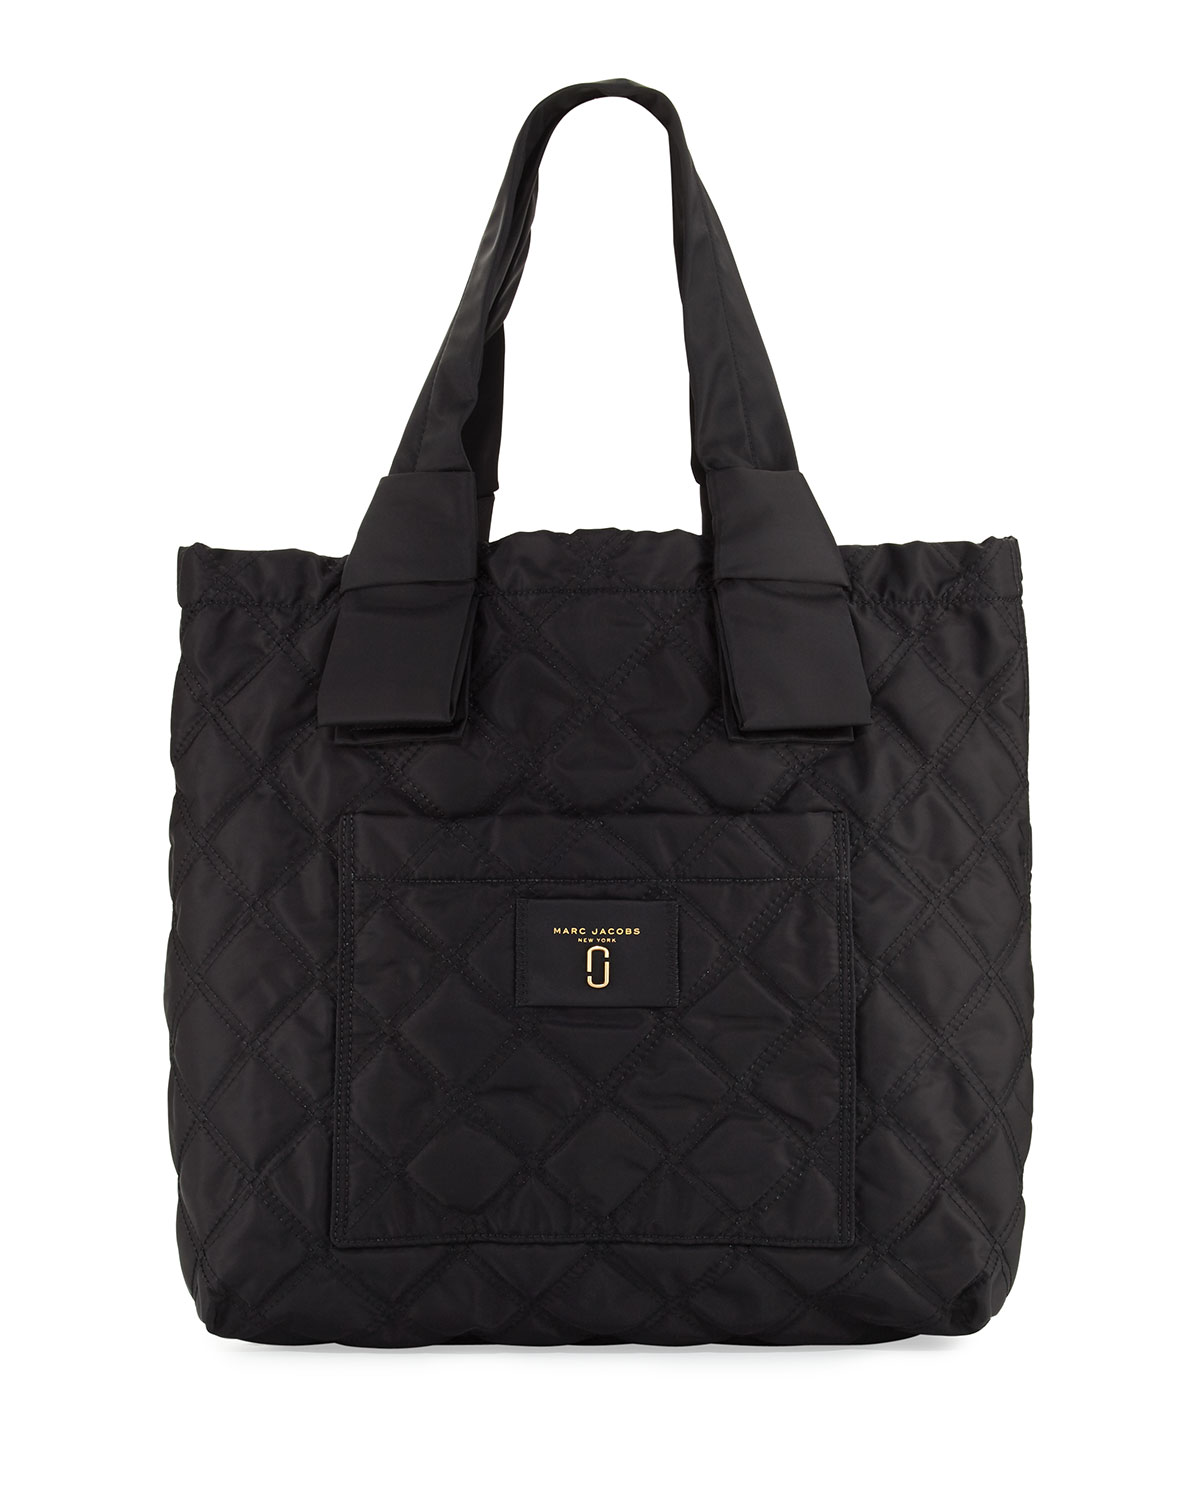 958f52d0e6501 Marc Jacobs Quilted Nylon Knot Tote Bag